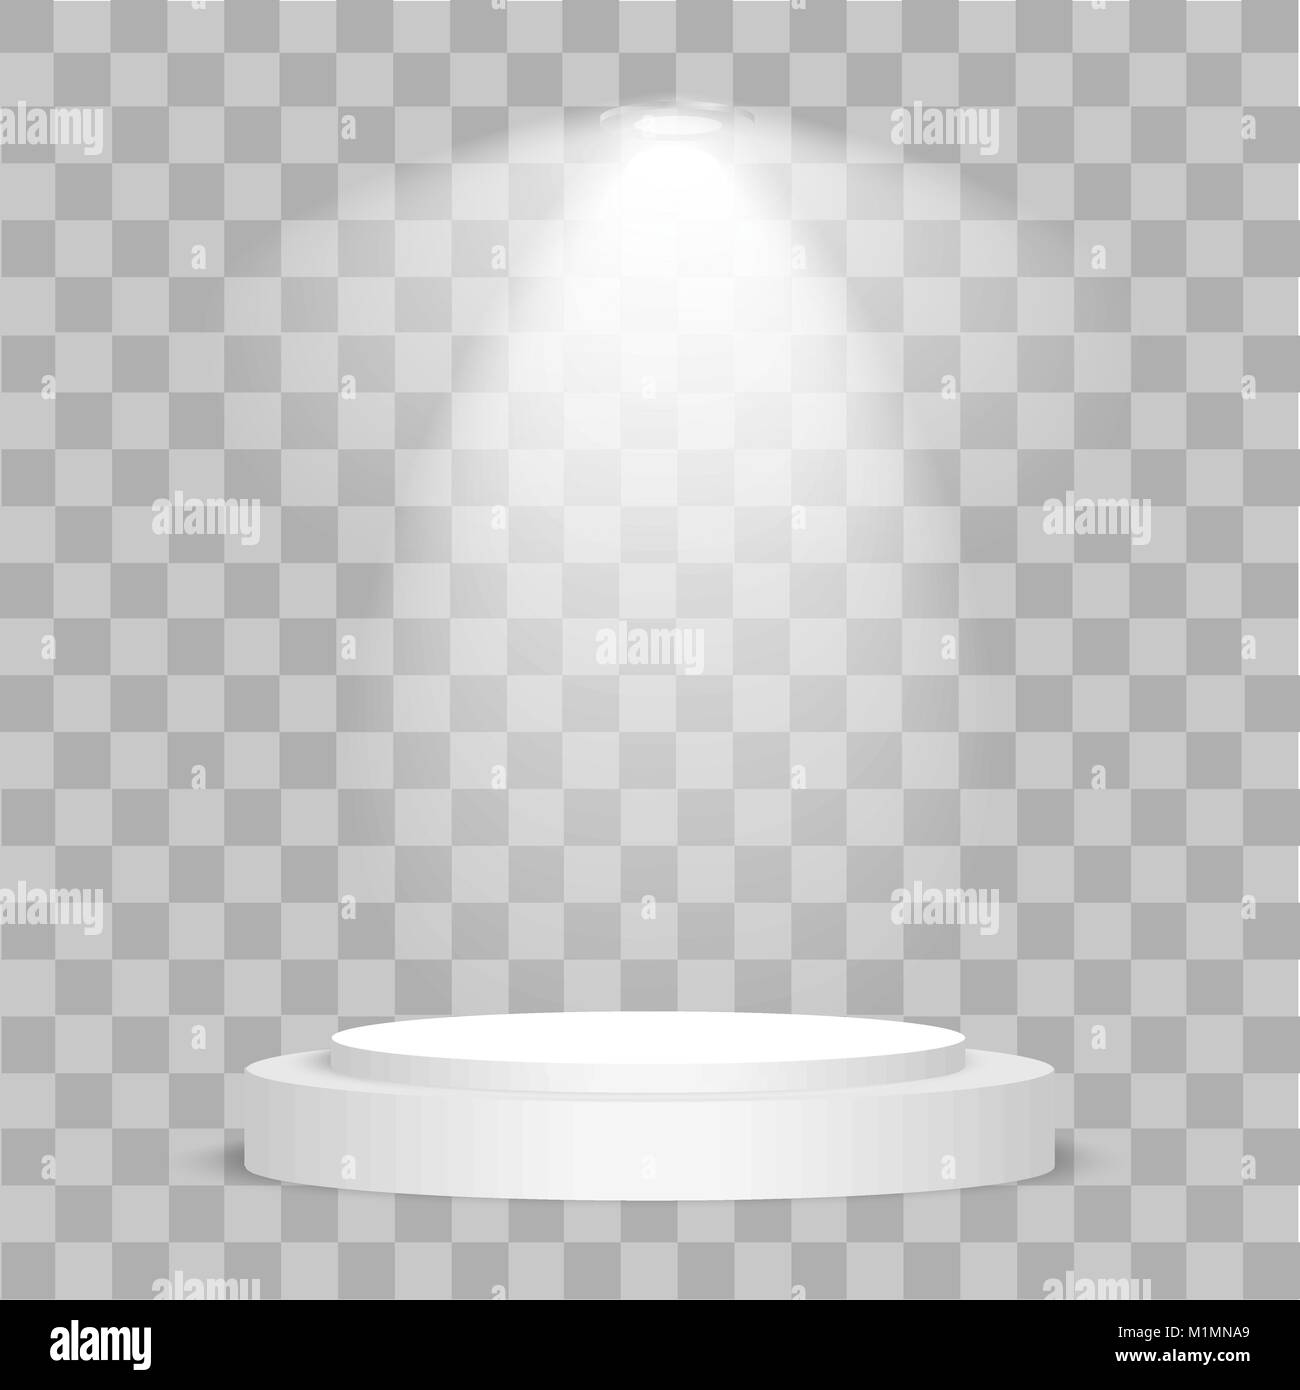 Round stage podium illuminated with light on transparent background round stage podium illuminated with light on transparent background stage vector backdrop festive podium scene with red carpet for award ceremony v dailygadgetfo Choice Image